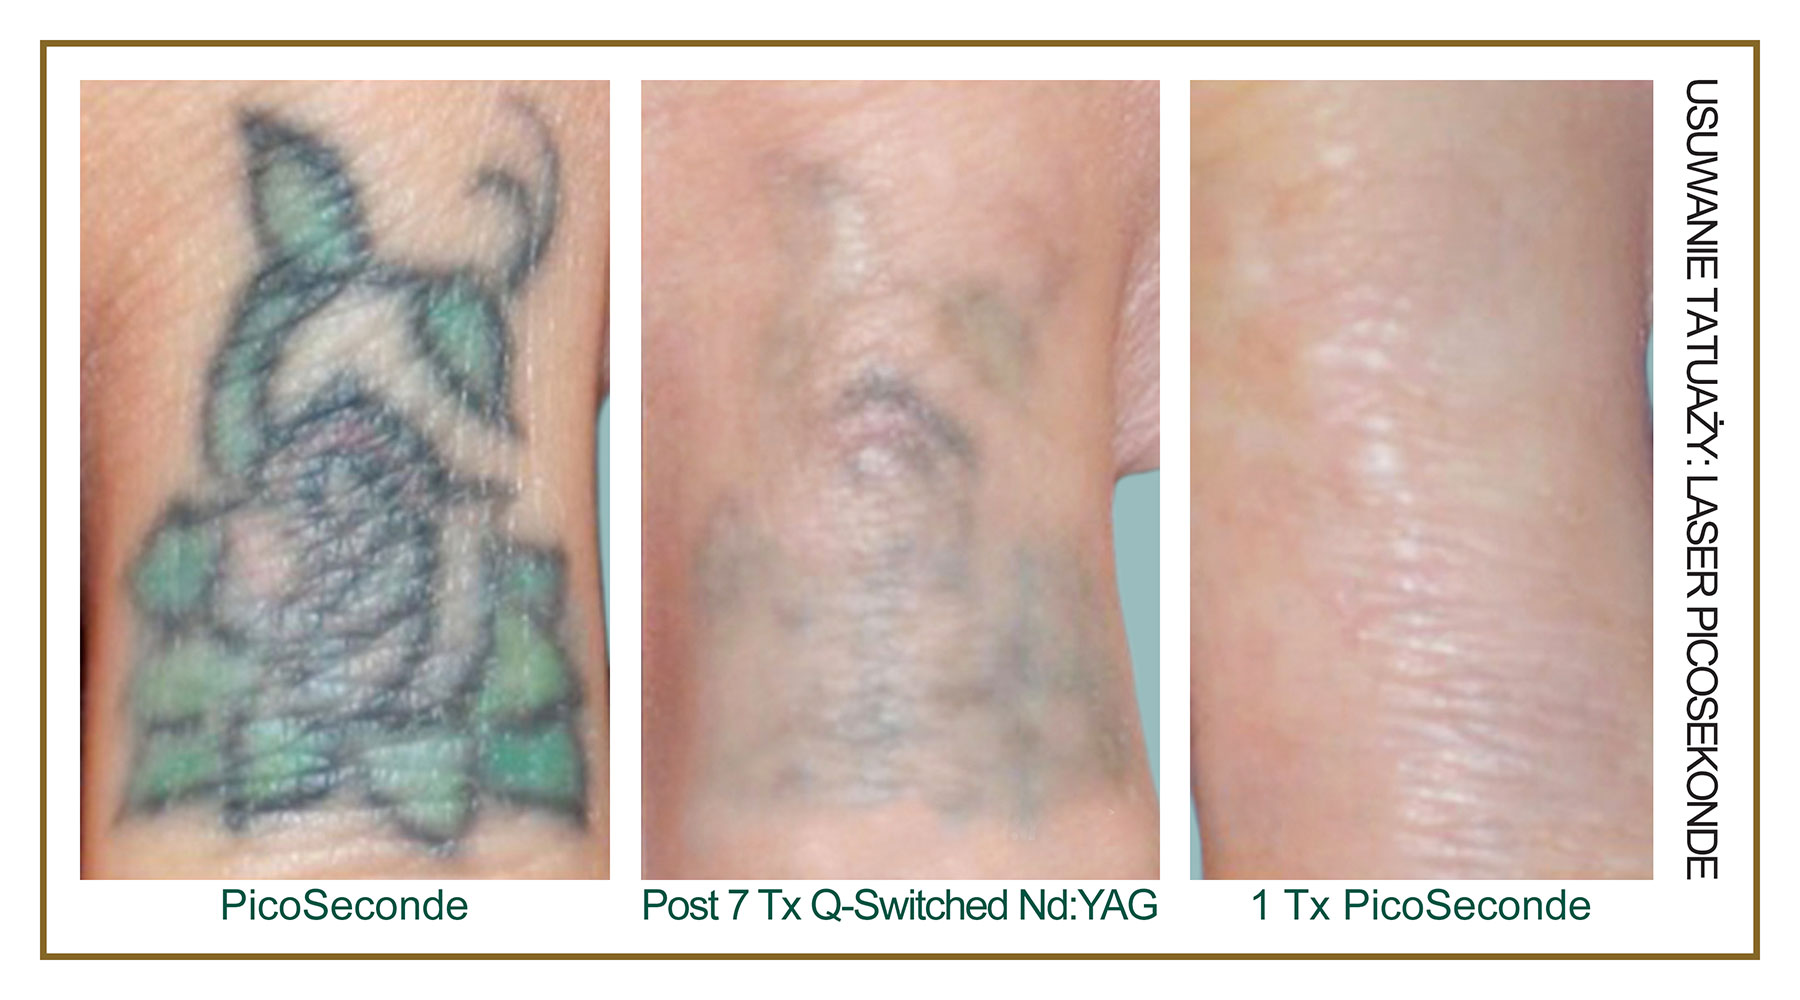 Tattoo-Removal-Laser-PicoSecond-PL-2.jpg